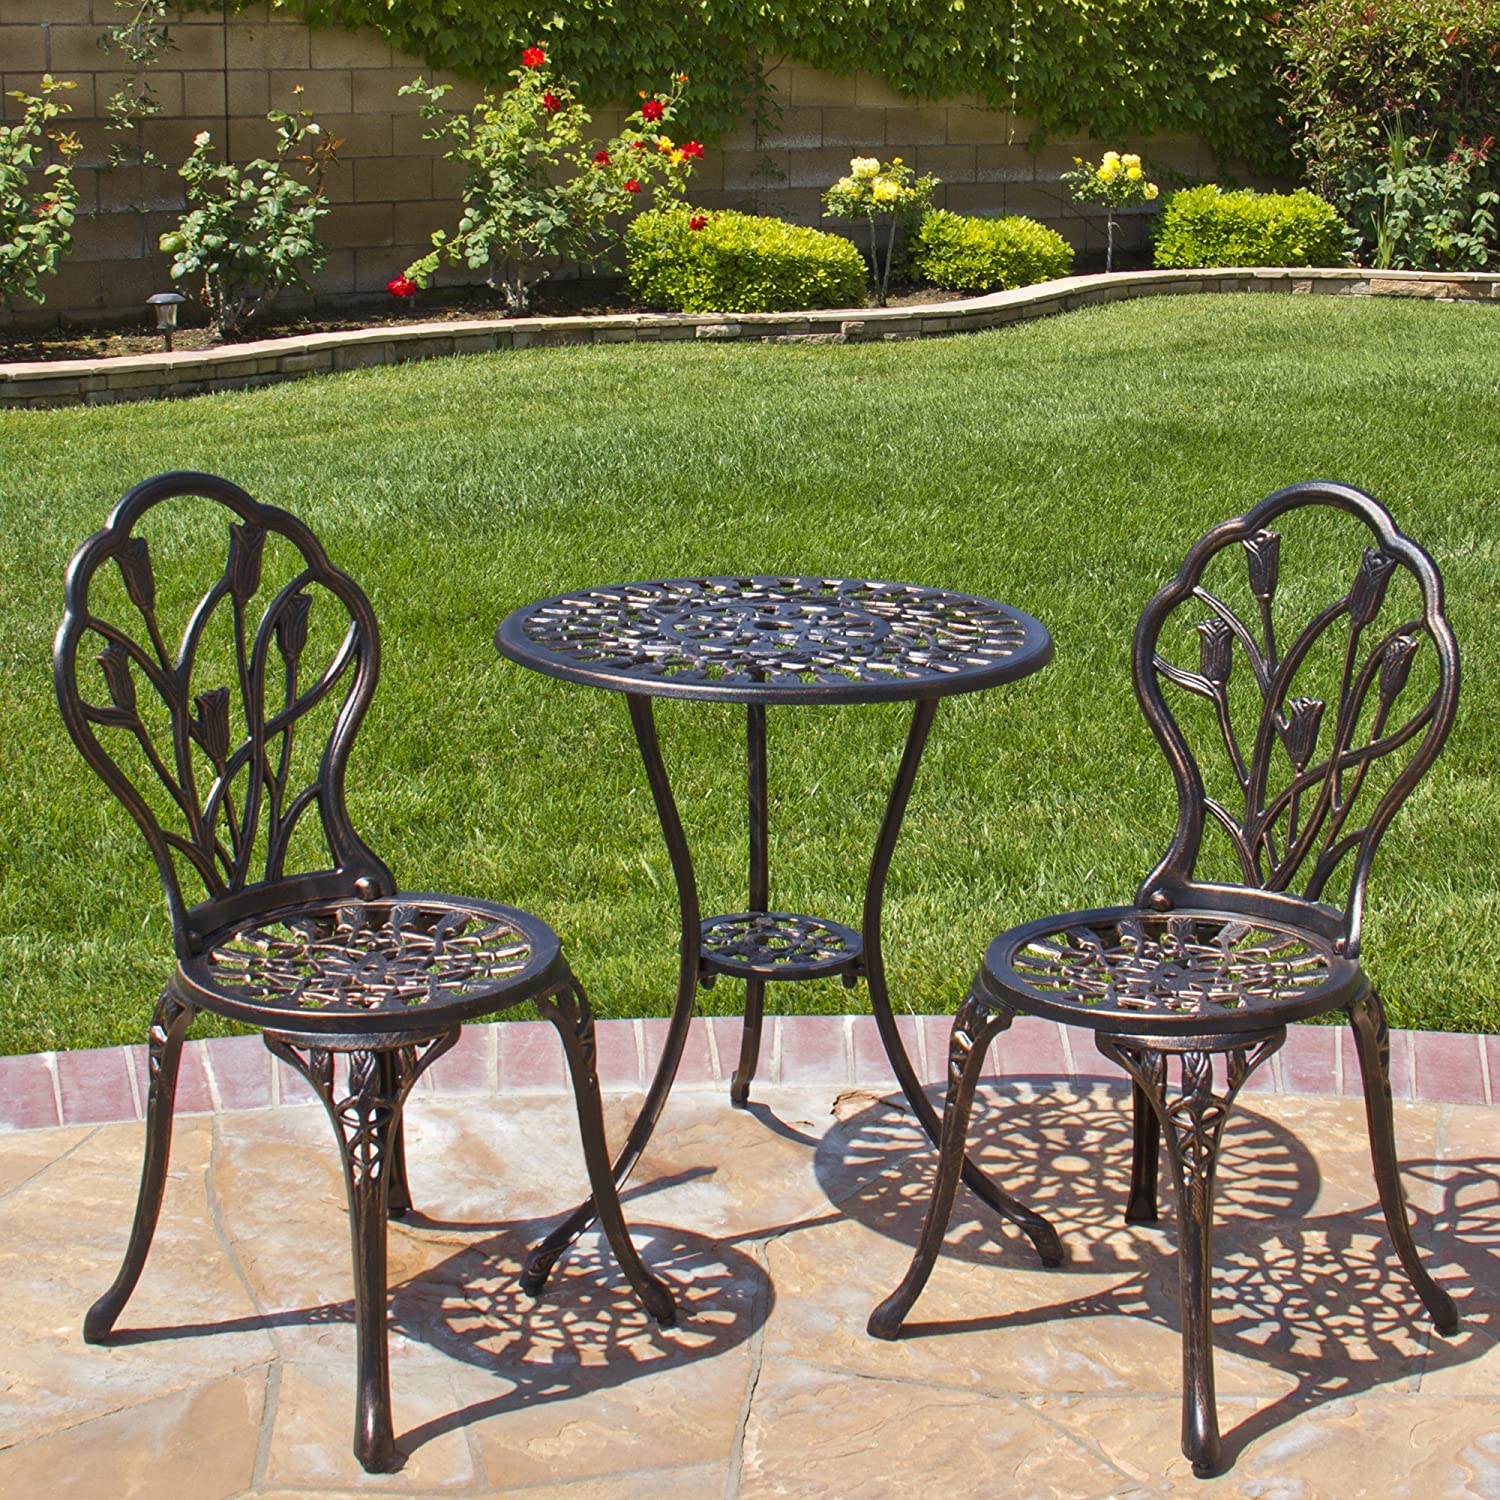 Amazon.com: Best Choice Products Outdoor Patio Furniture Tulip ...